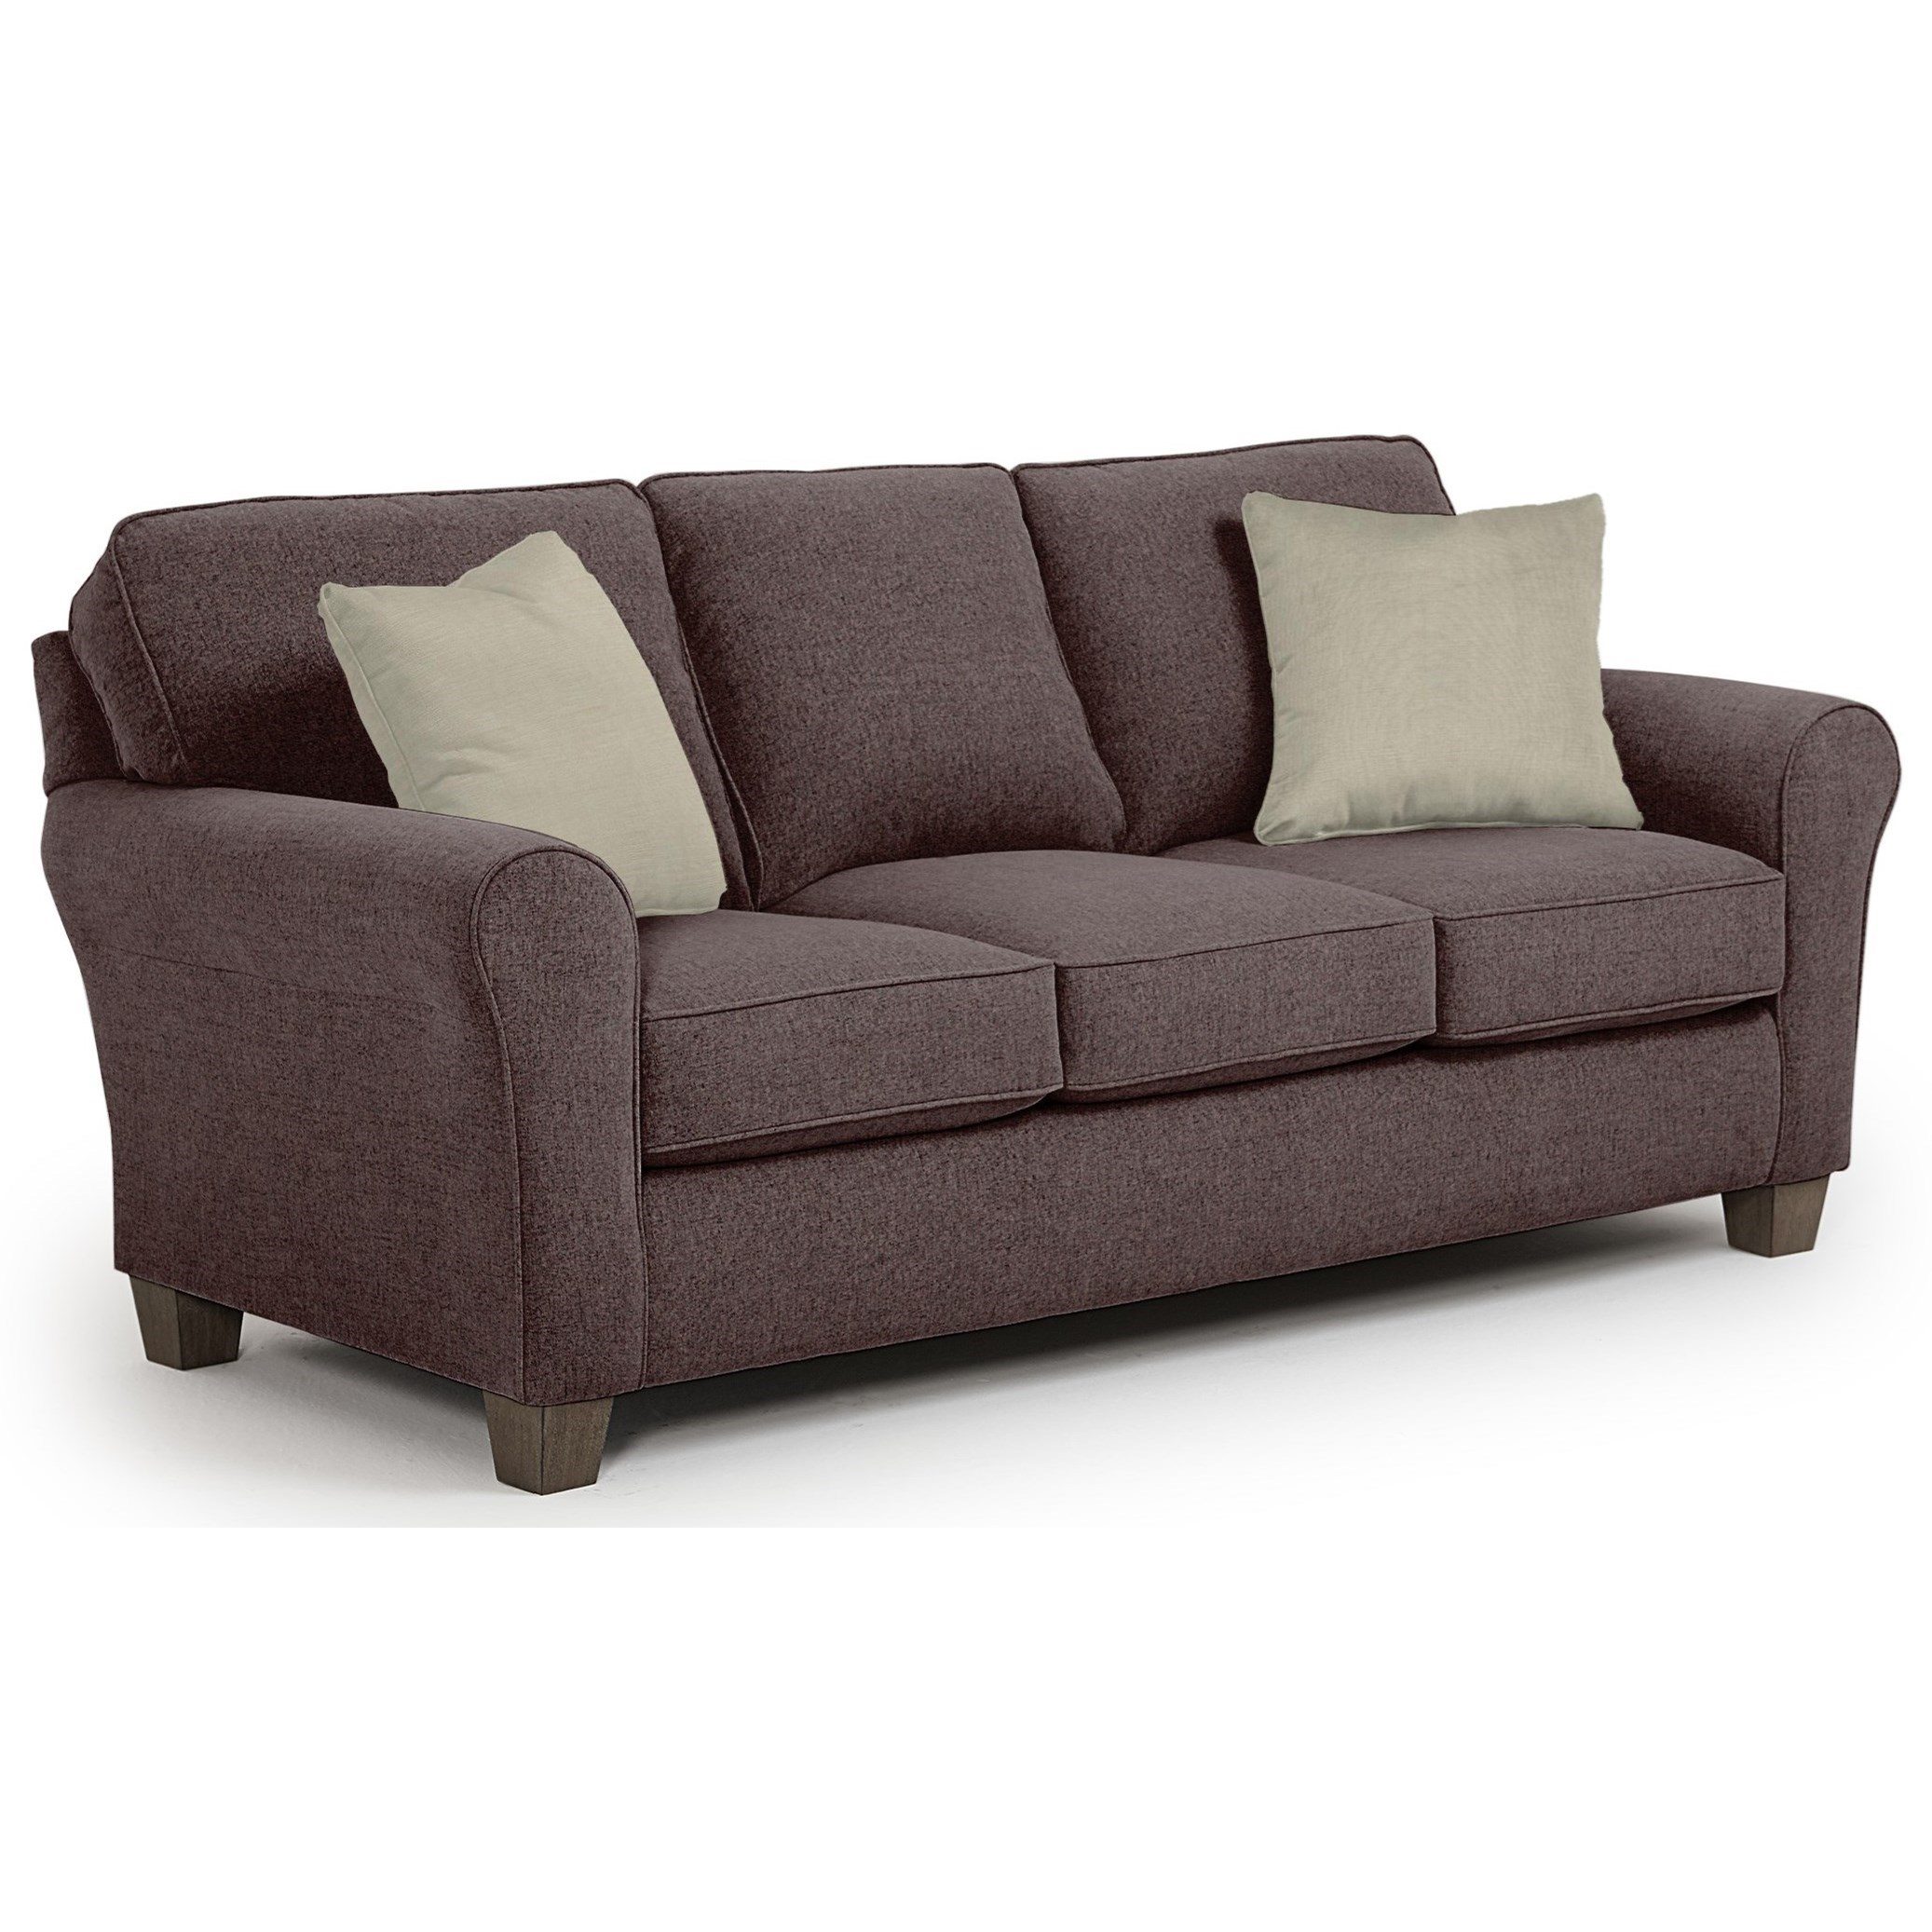 Annabel  Custom 3 Over 3 Sofa by Best Home Furnishings at Rooms and Rest